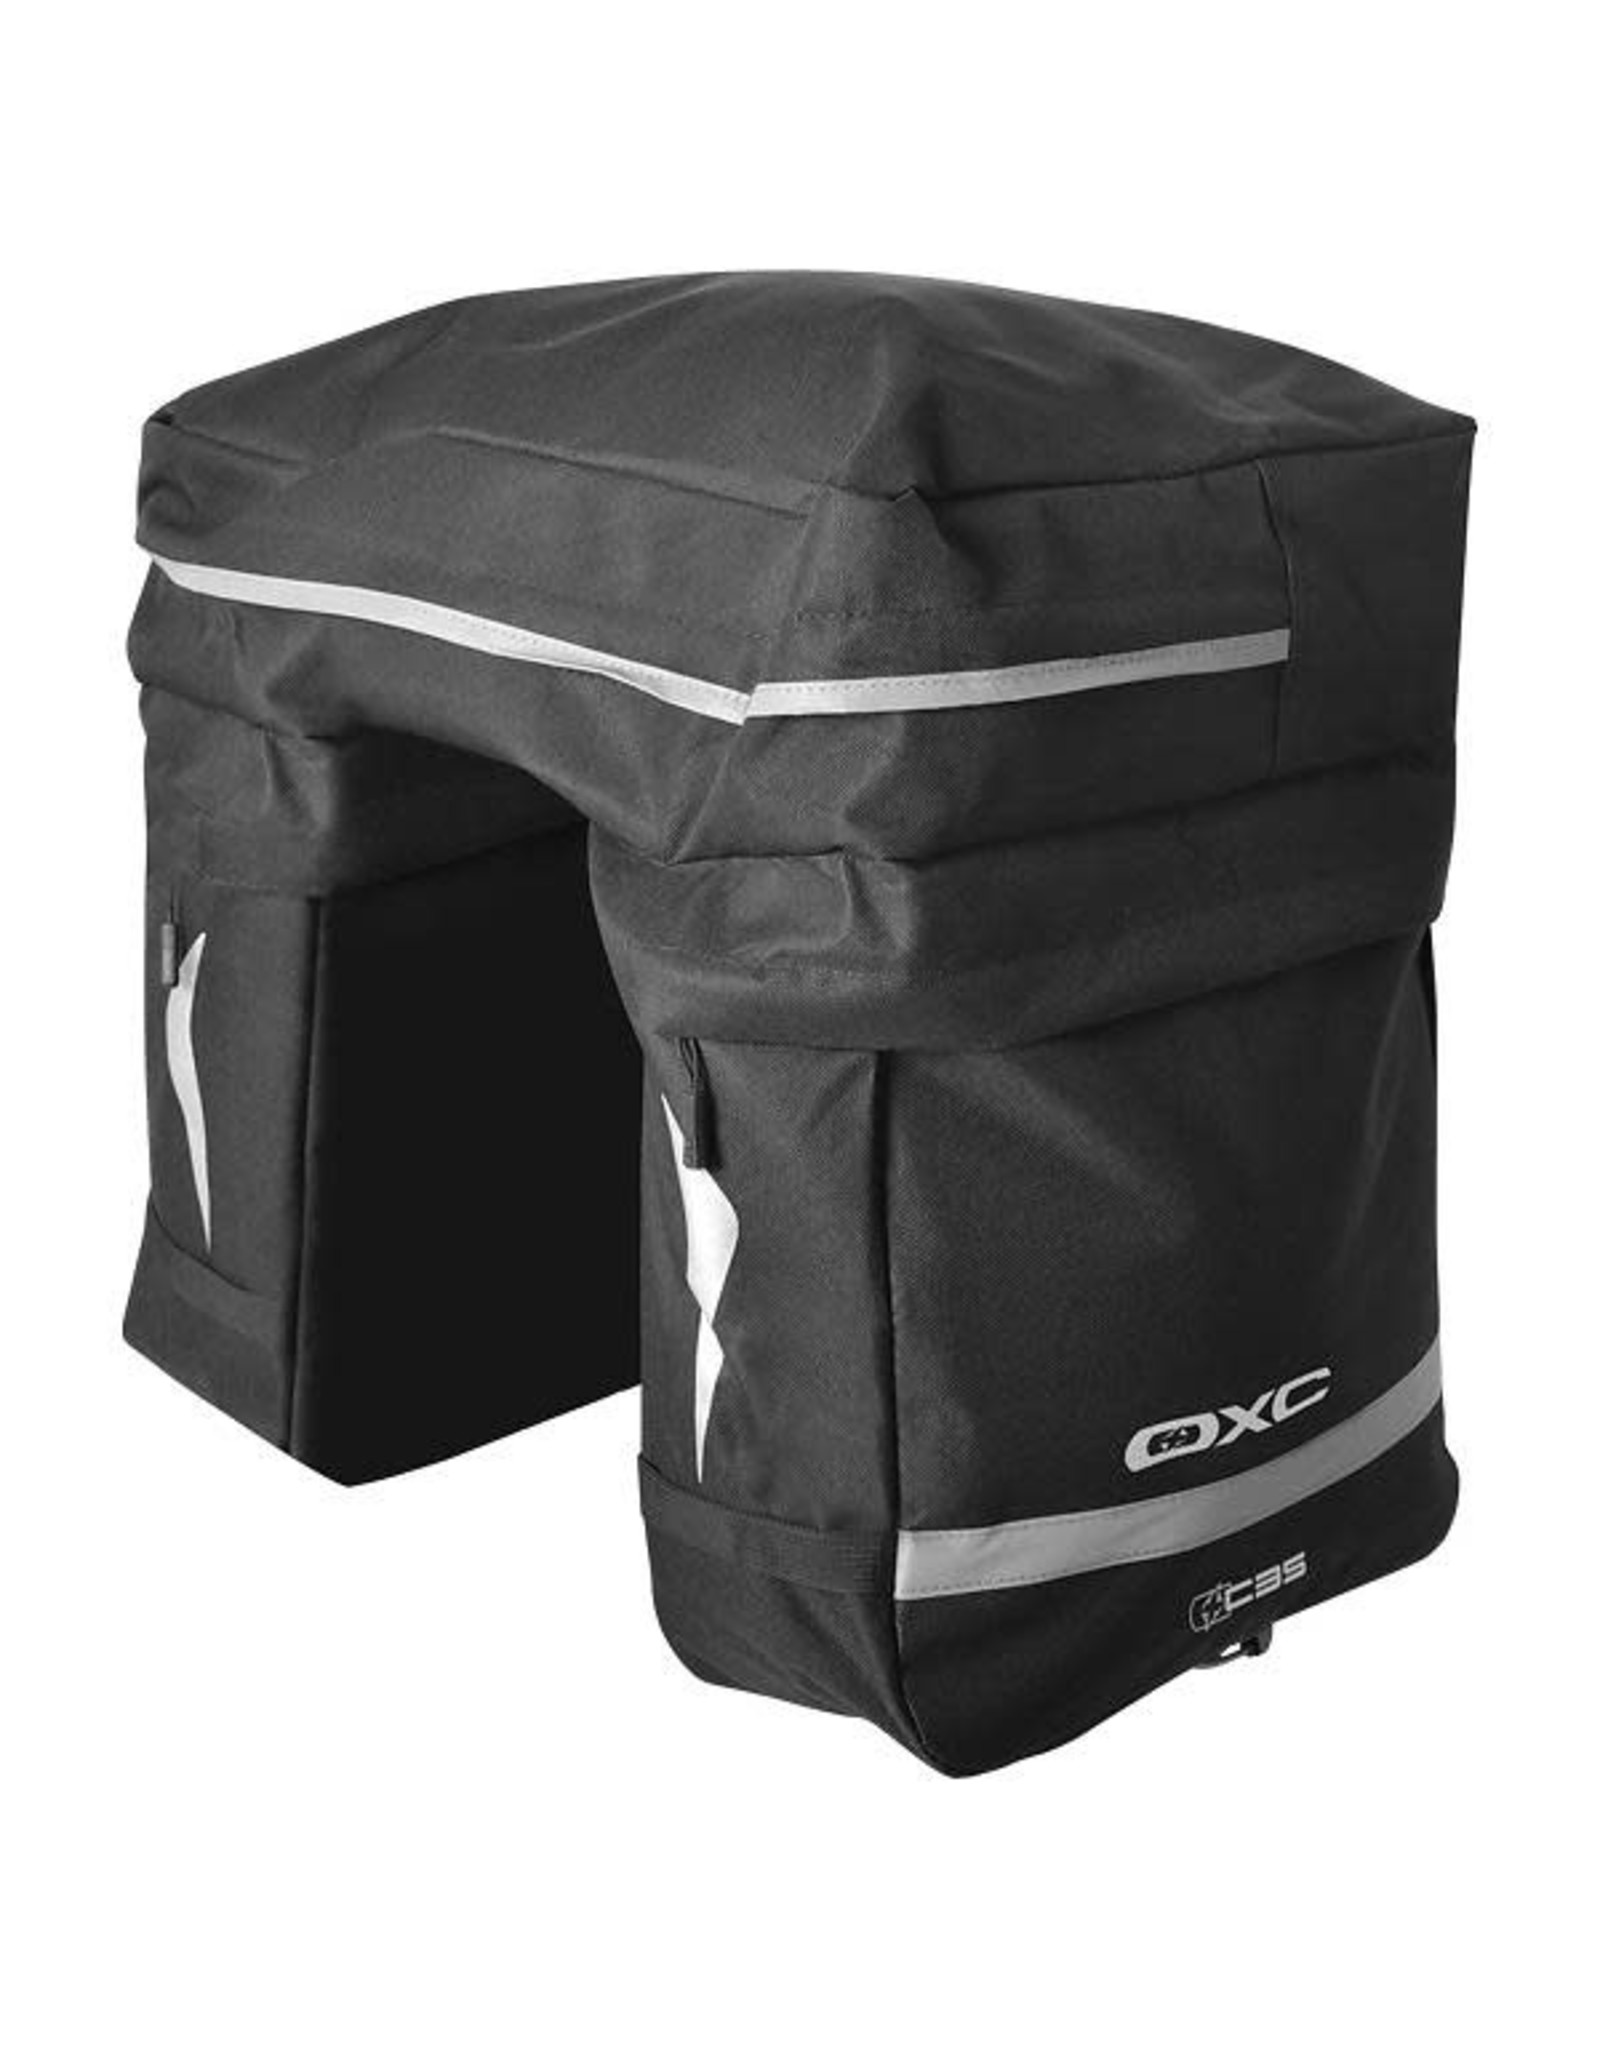 C35 Triple Pannier Bag/Sac 35L Black / Noir